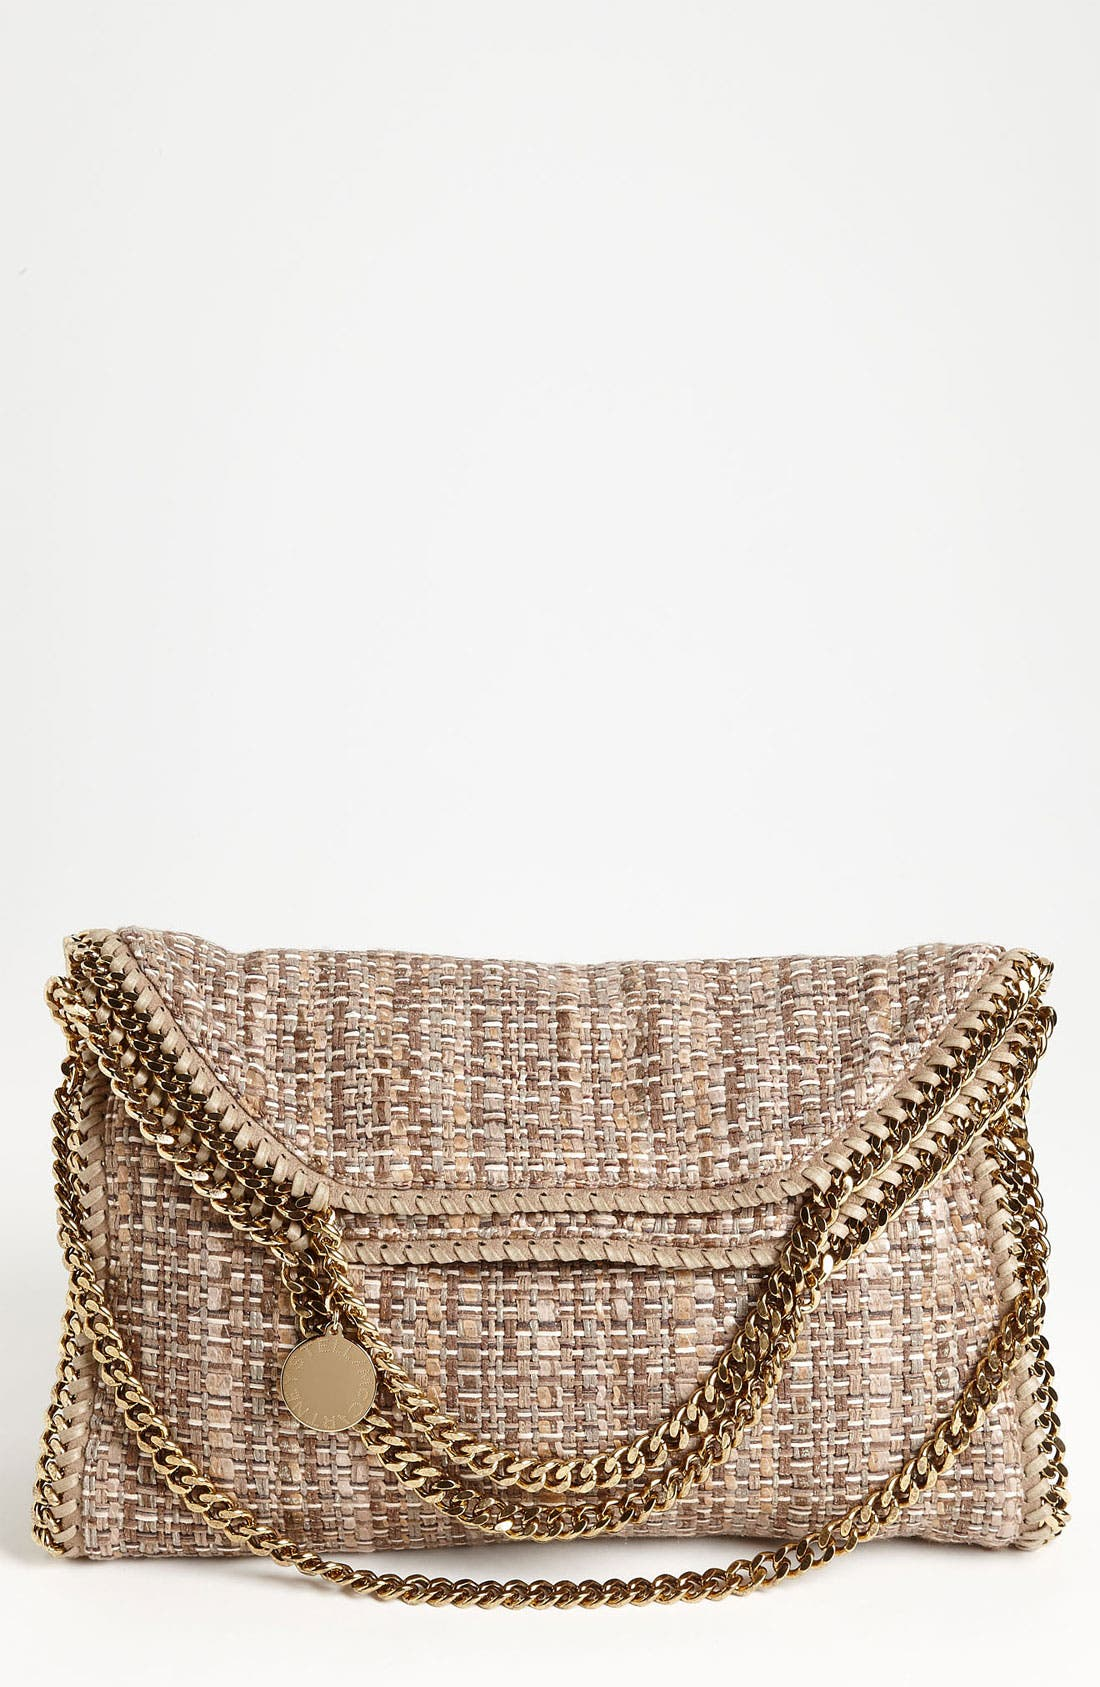 Alternate Image 1 Selected - Stella McCartney 'Falabella' Metallic Bouclé Foldover Tote